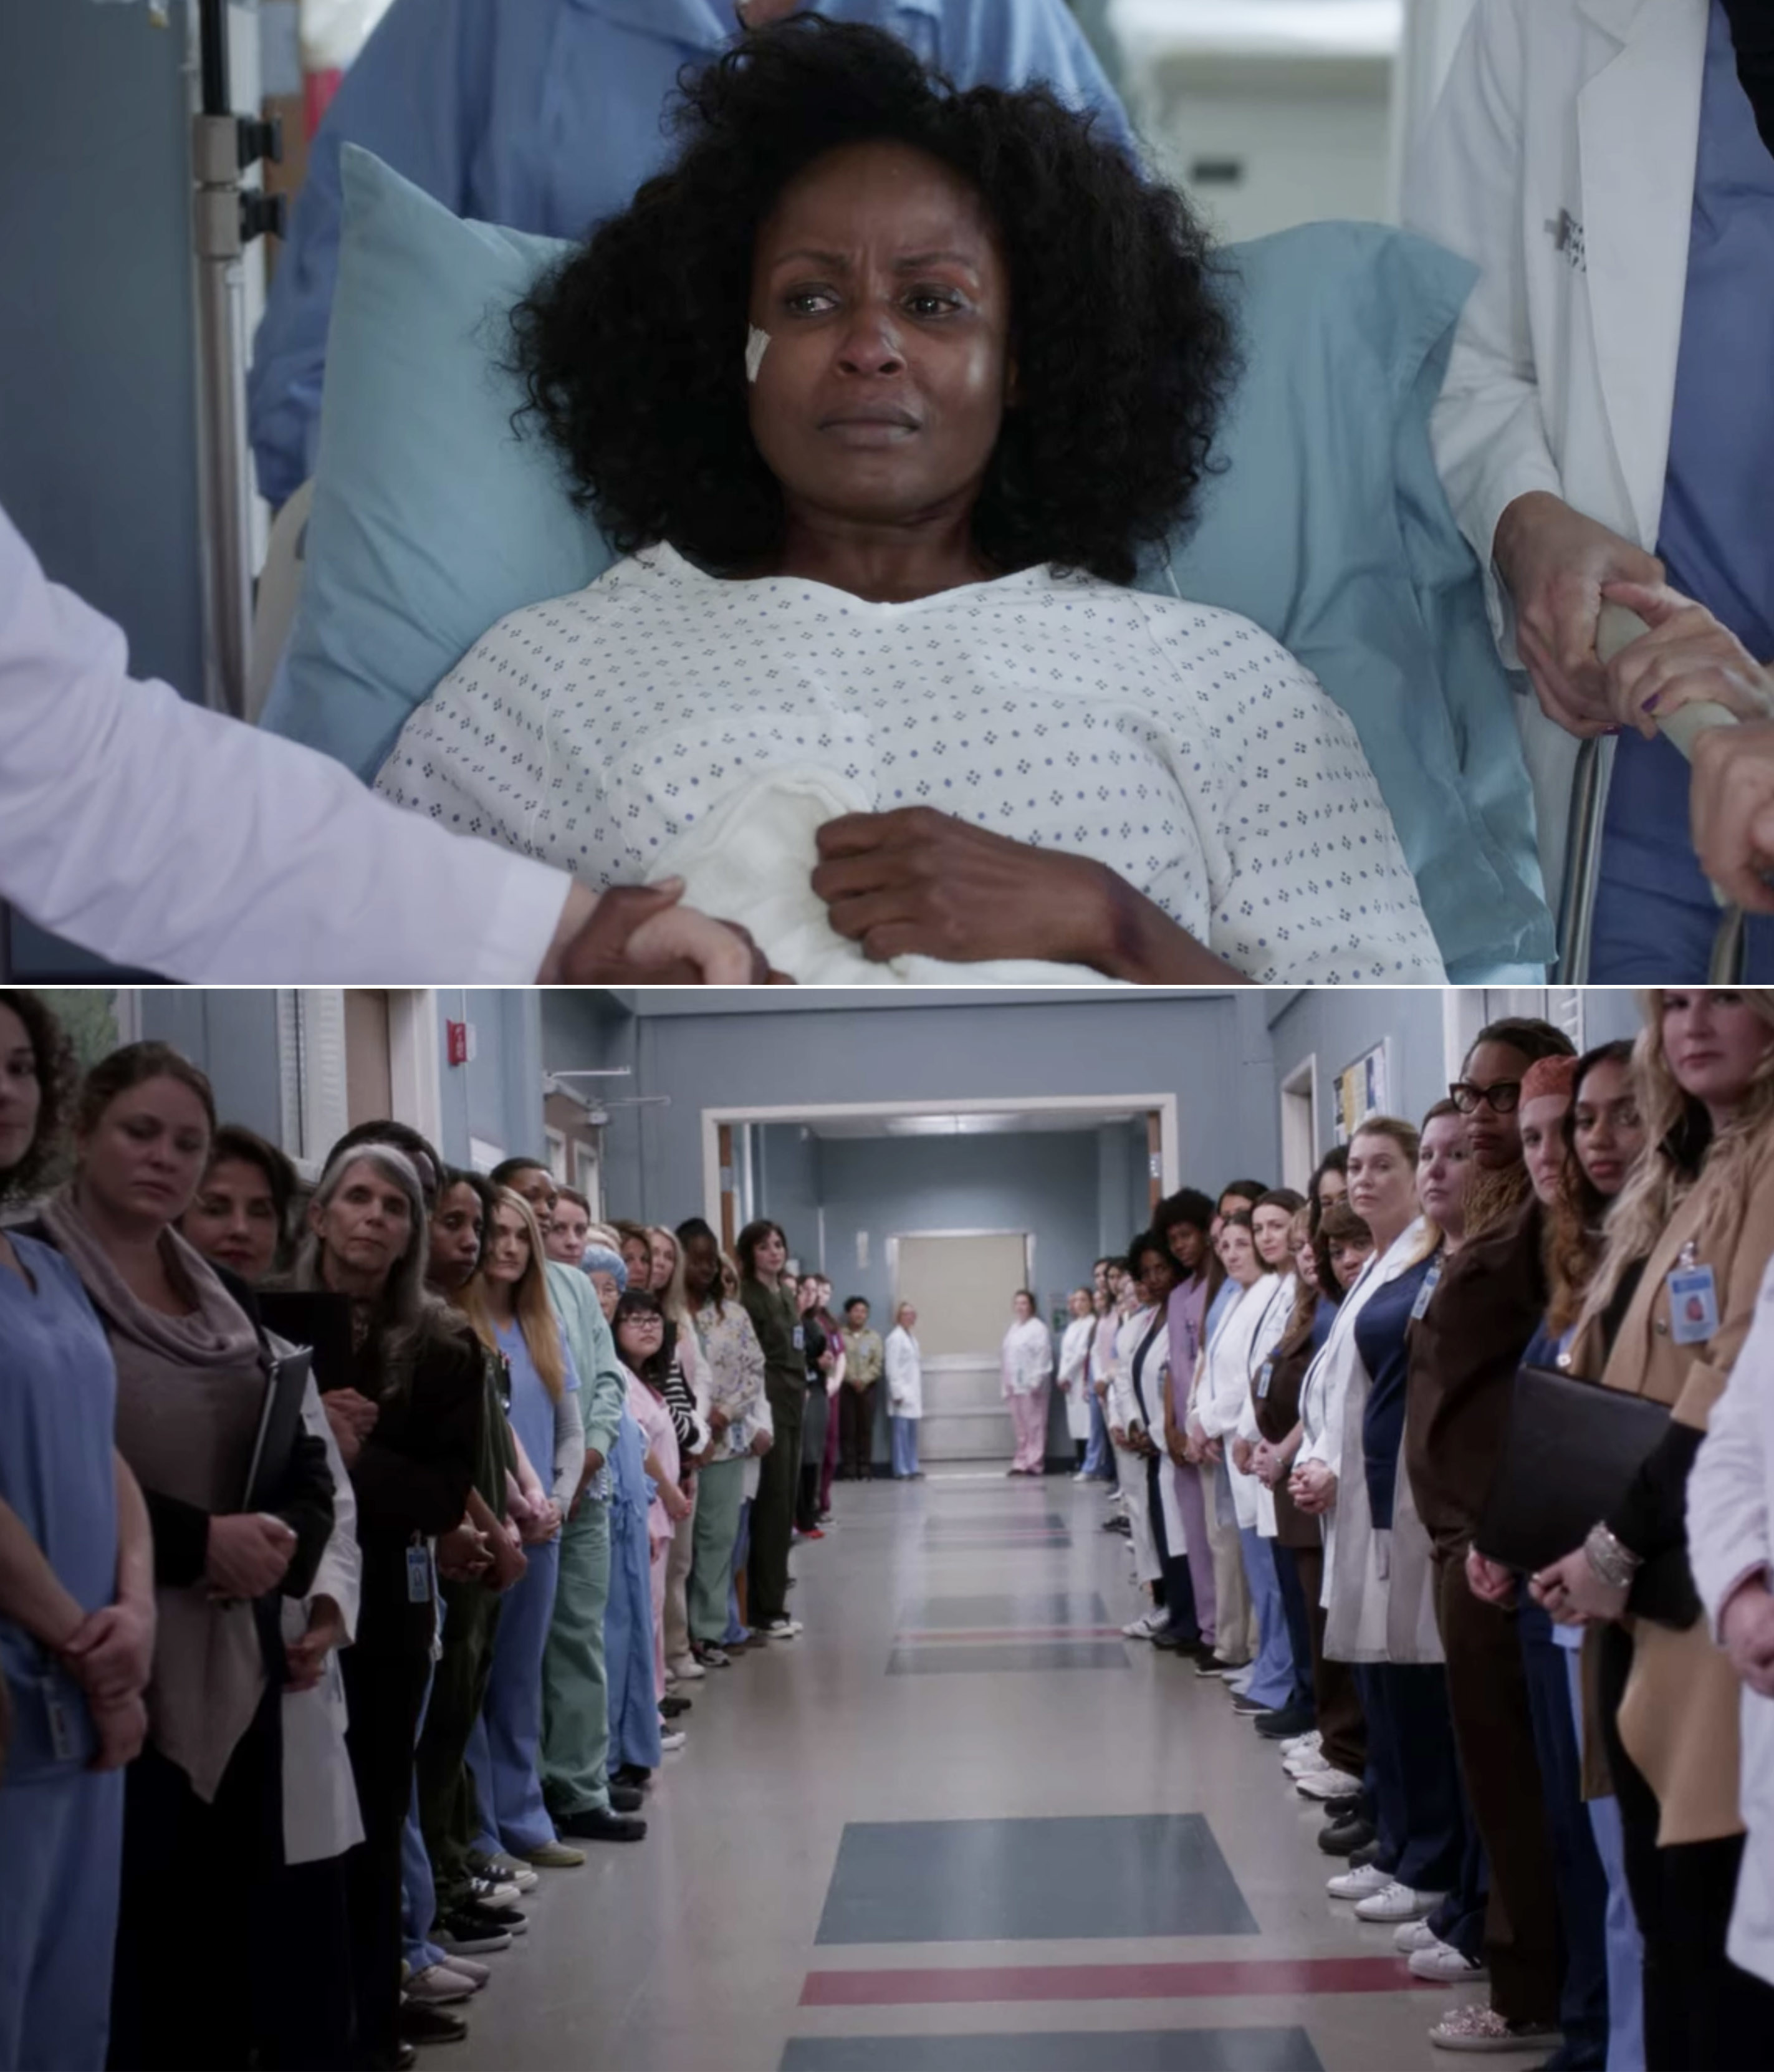 The women of Grey Sloan lining the hallway for a patient